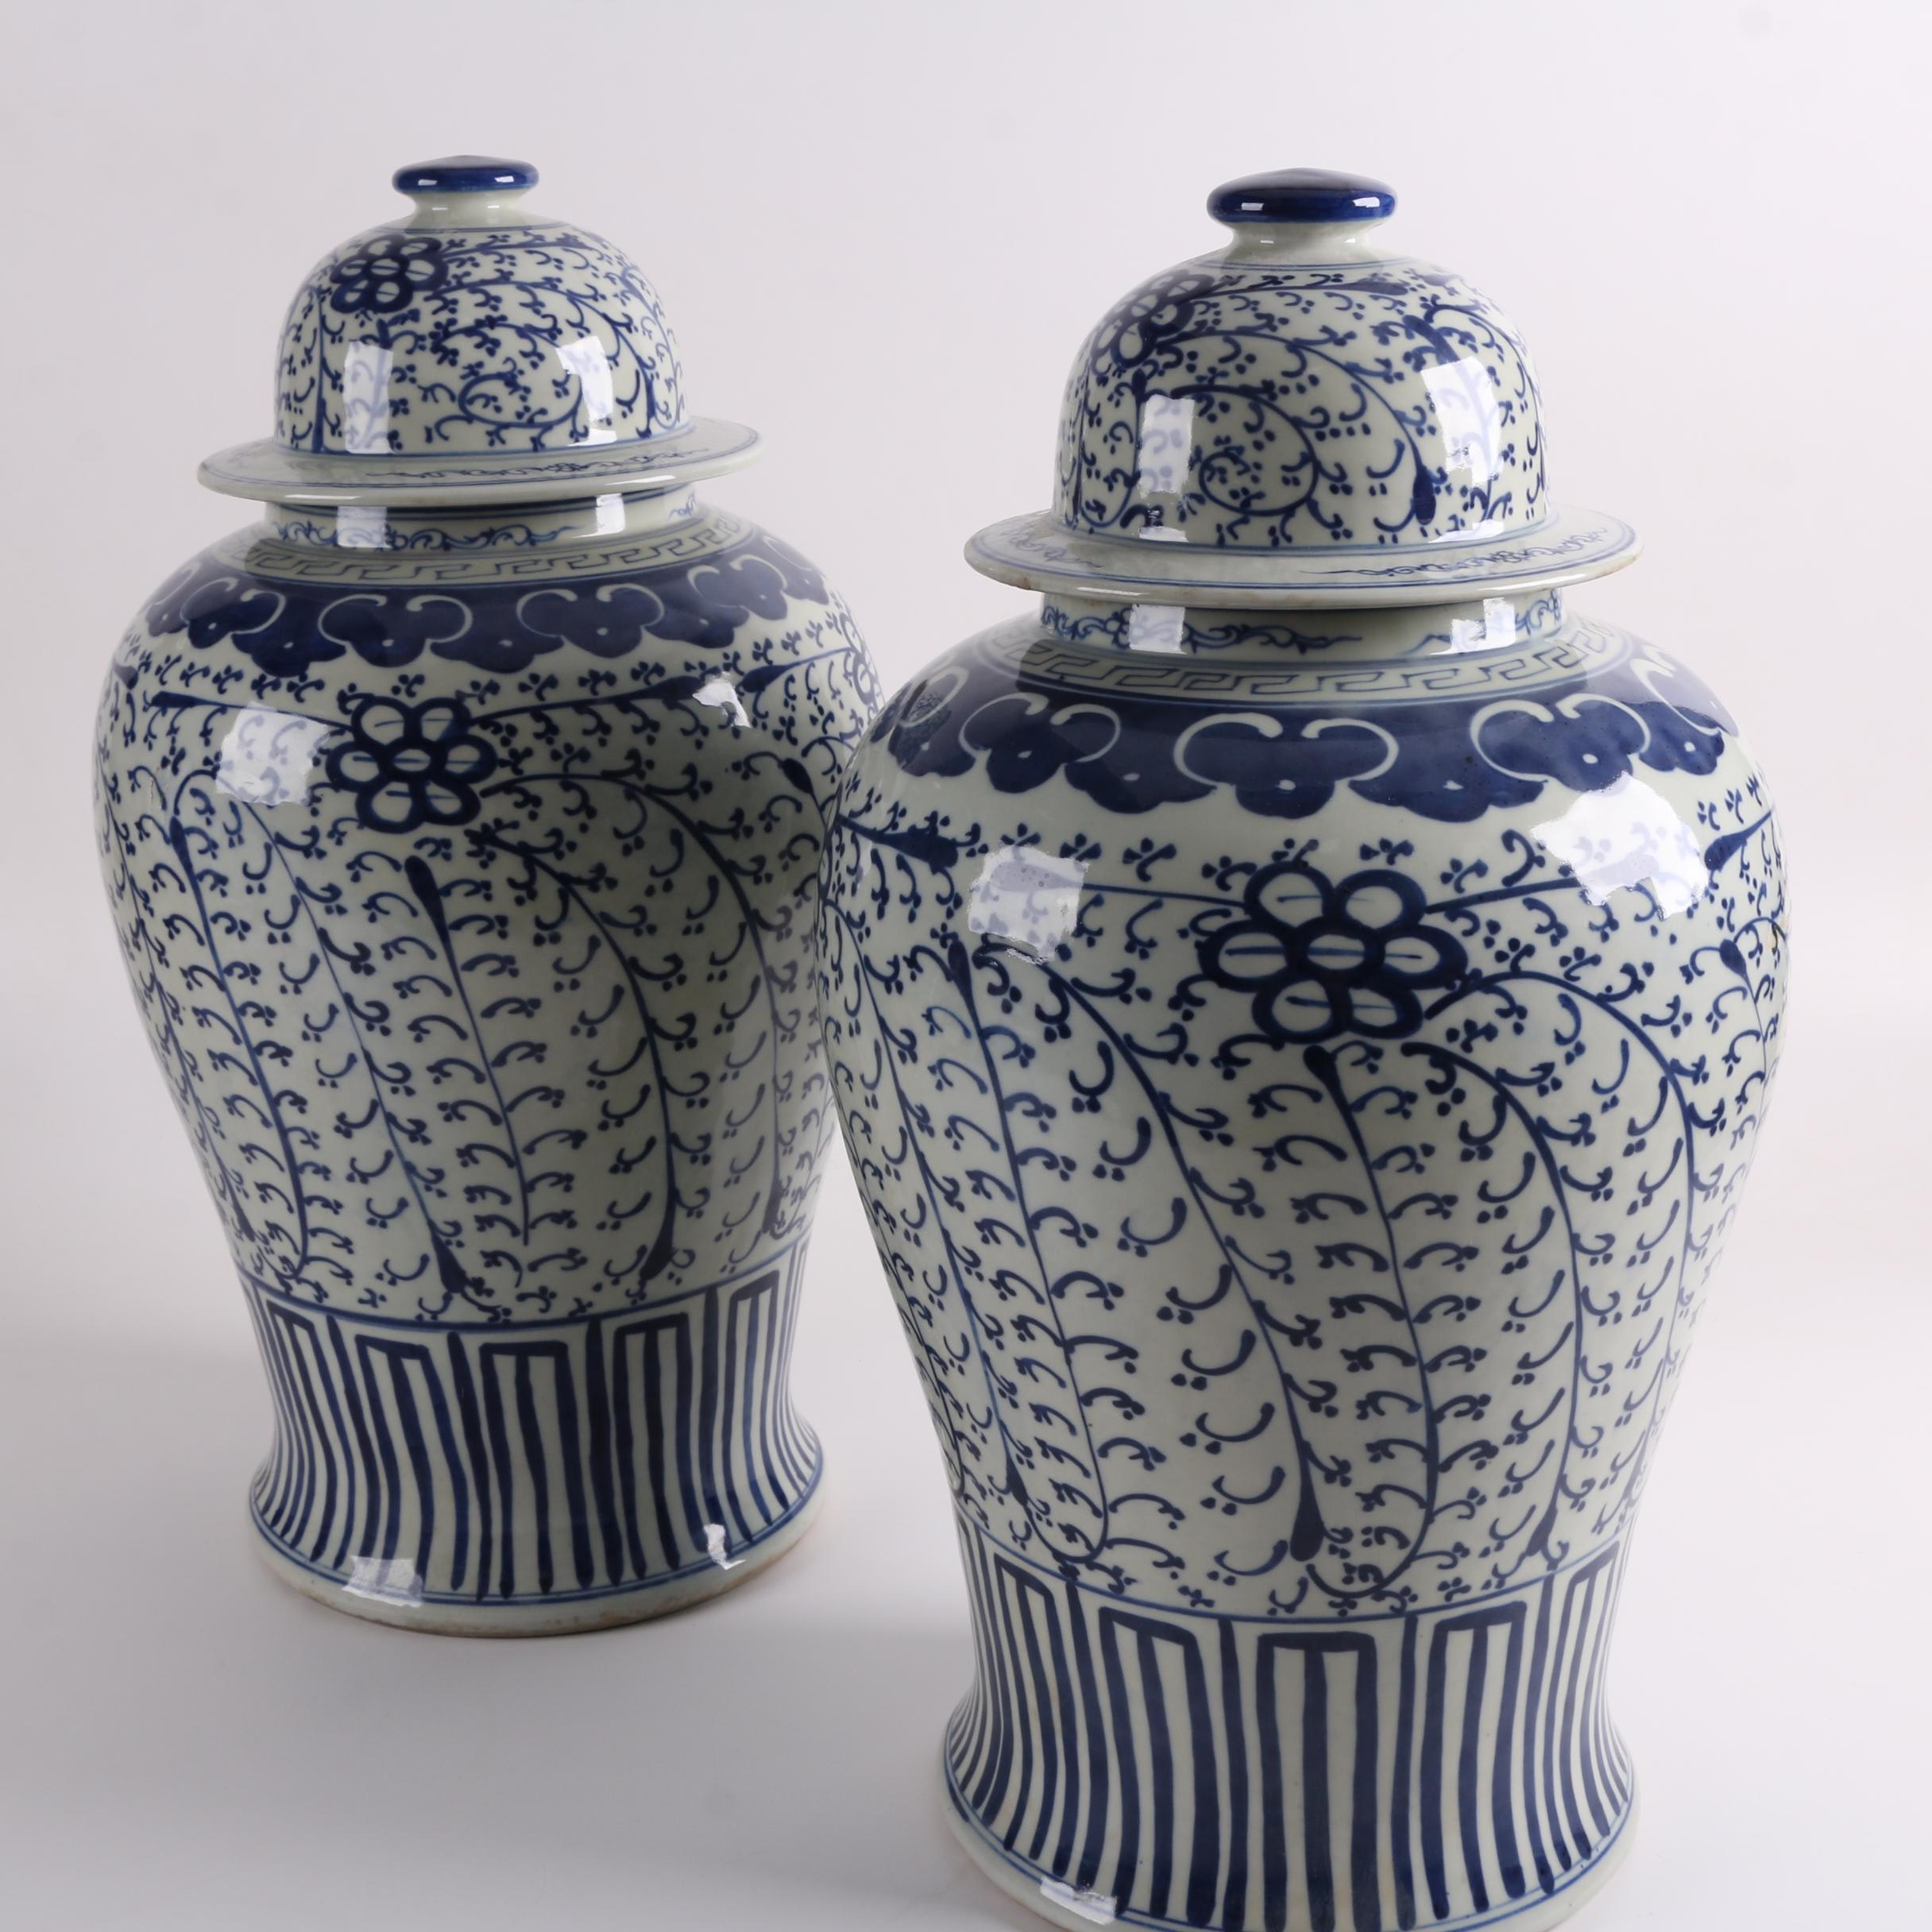 Chinese Blue and White Porcelain Ginger Jars